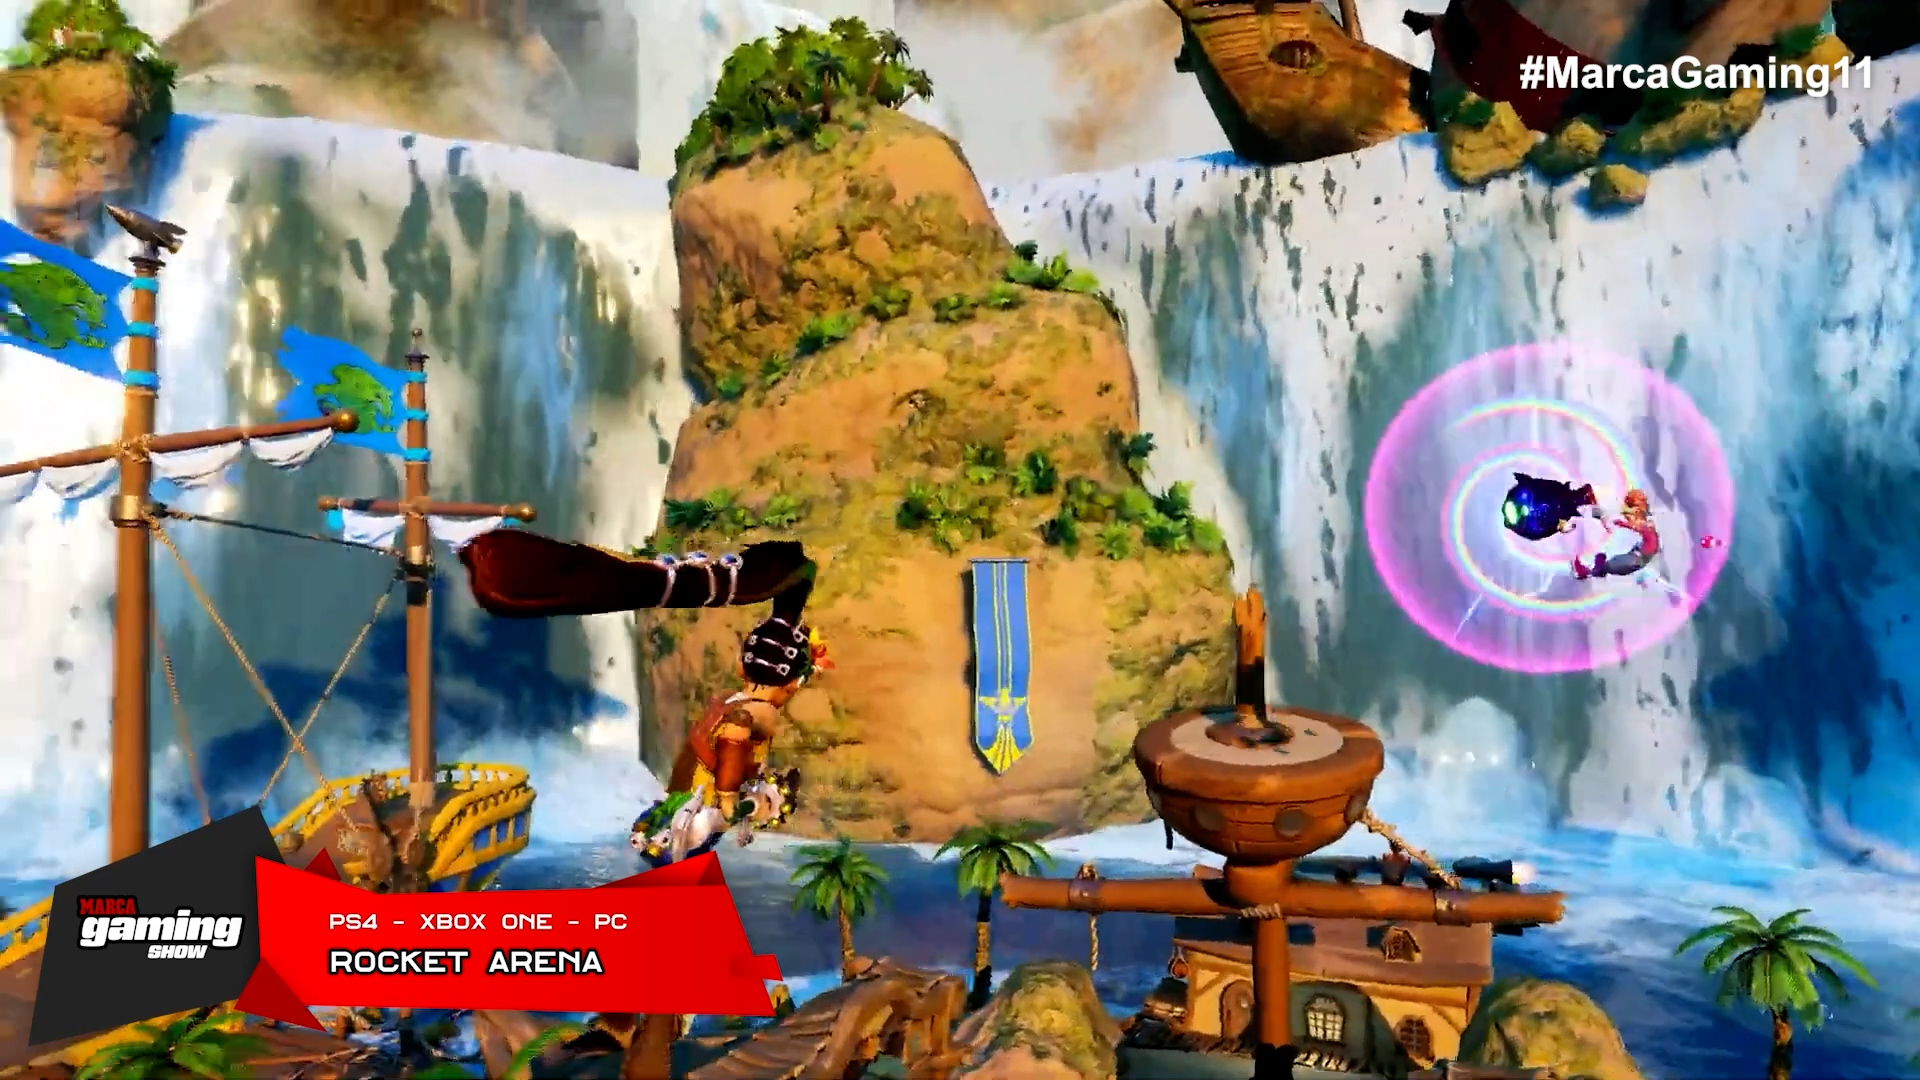 Rocket Arena ( PS4 - XBOX ONE - PC )